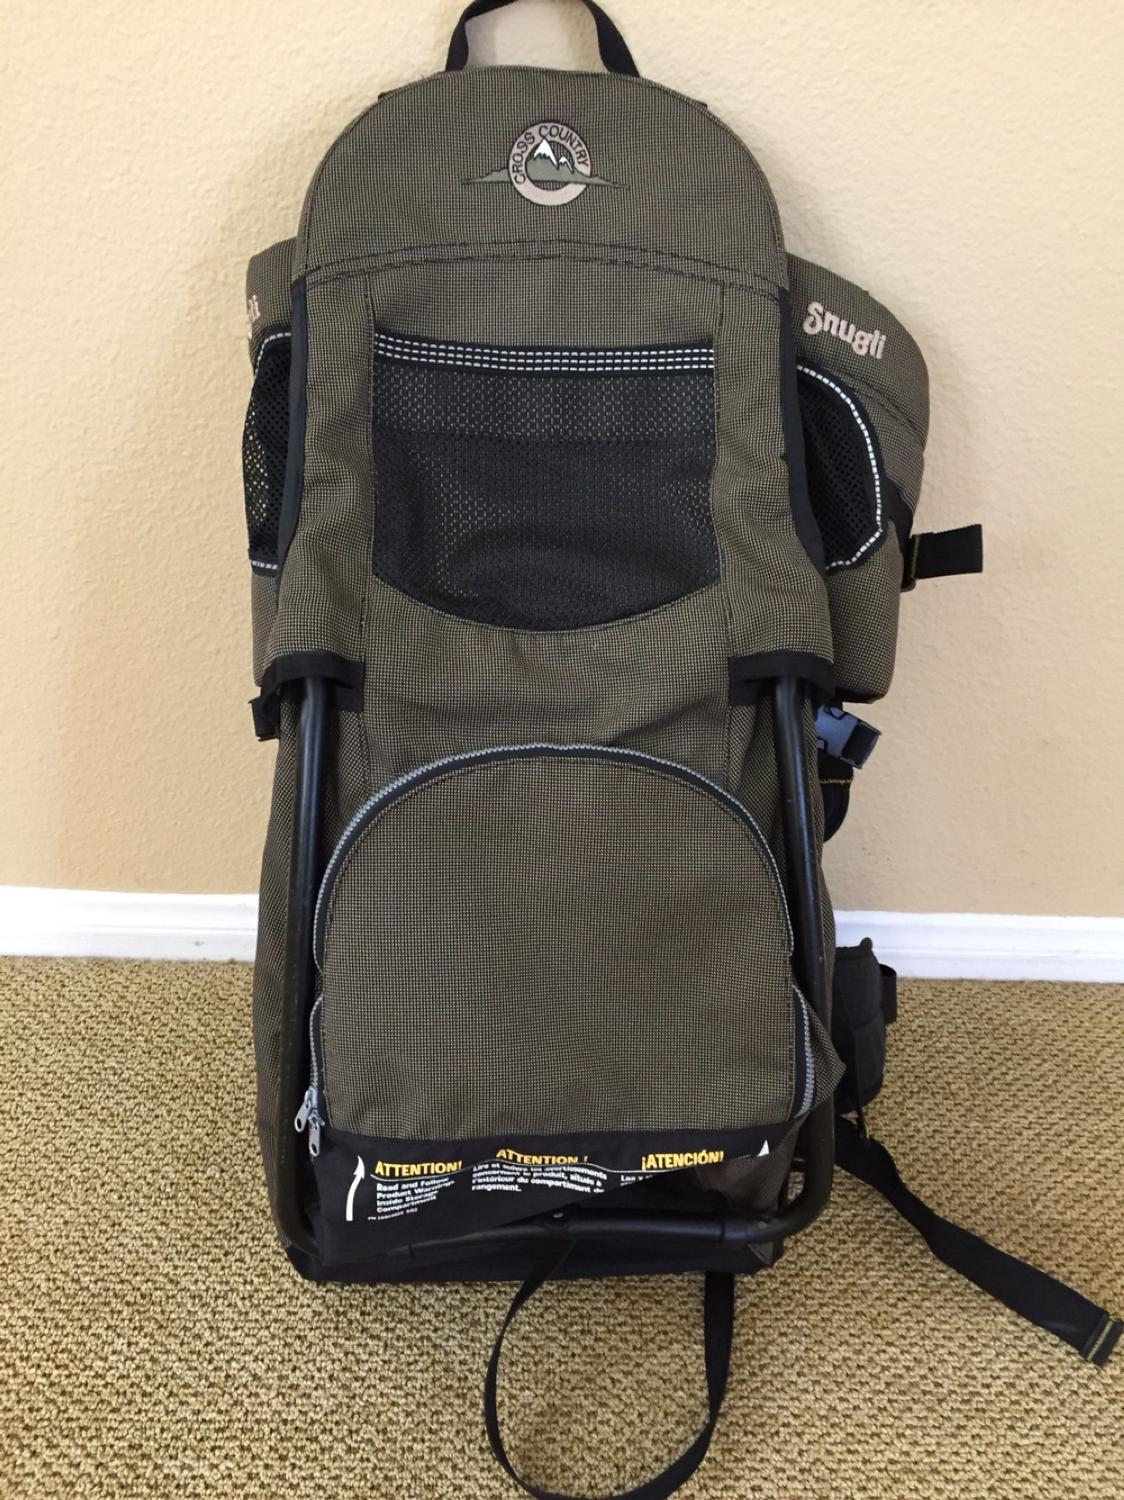 314e92c5c92 Snugli Cross Country Backpack Child Carrier